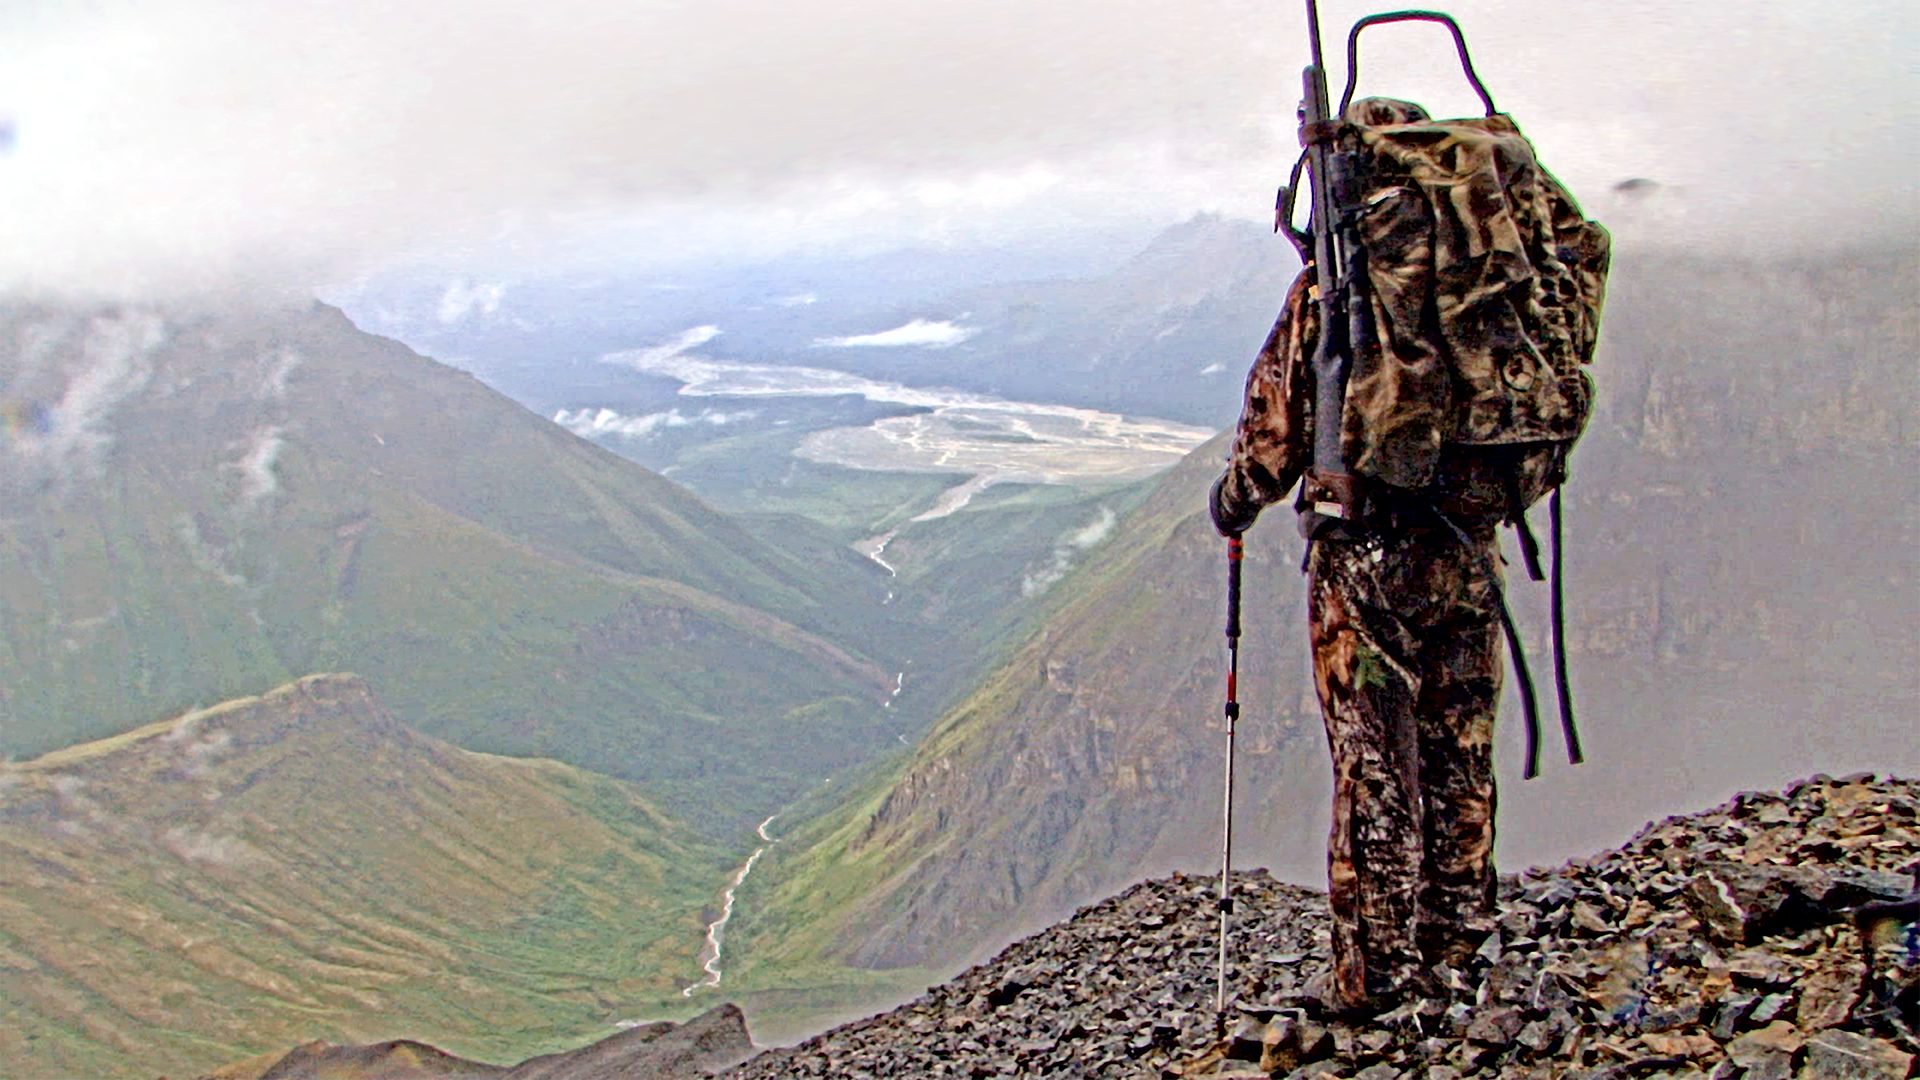 Watch Alaska Outdoors | Prime Video